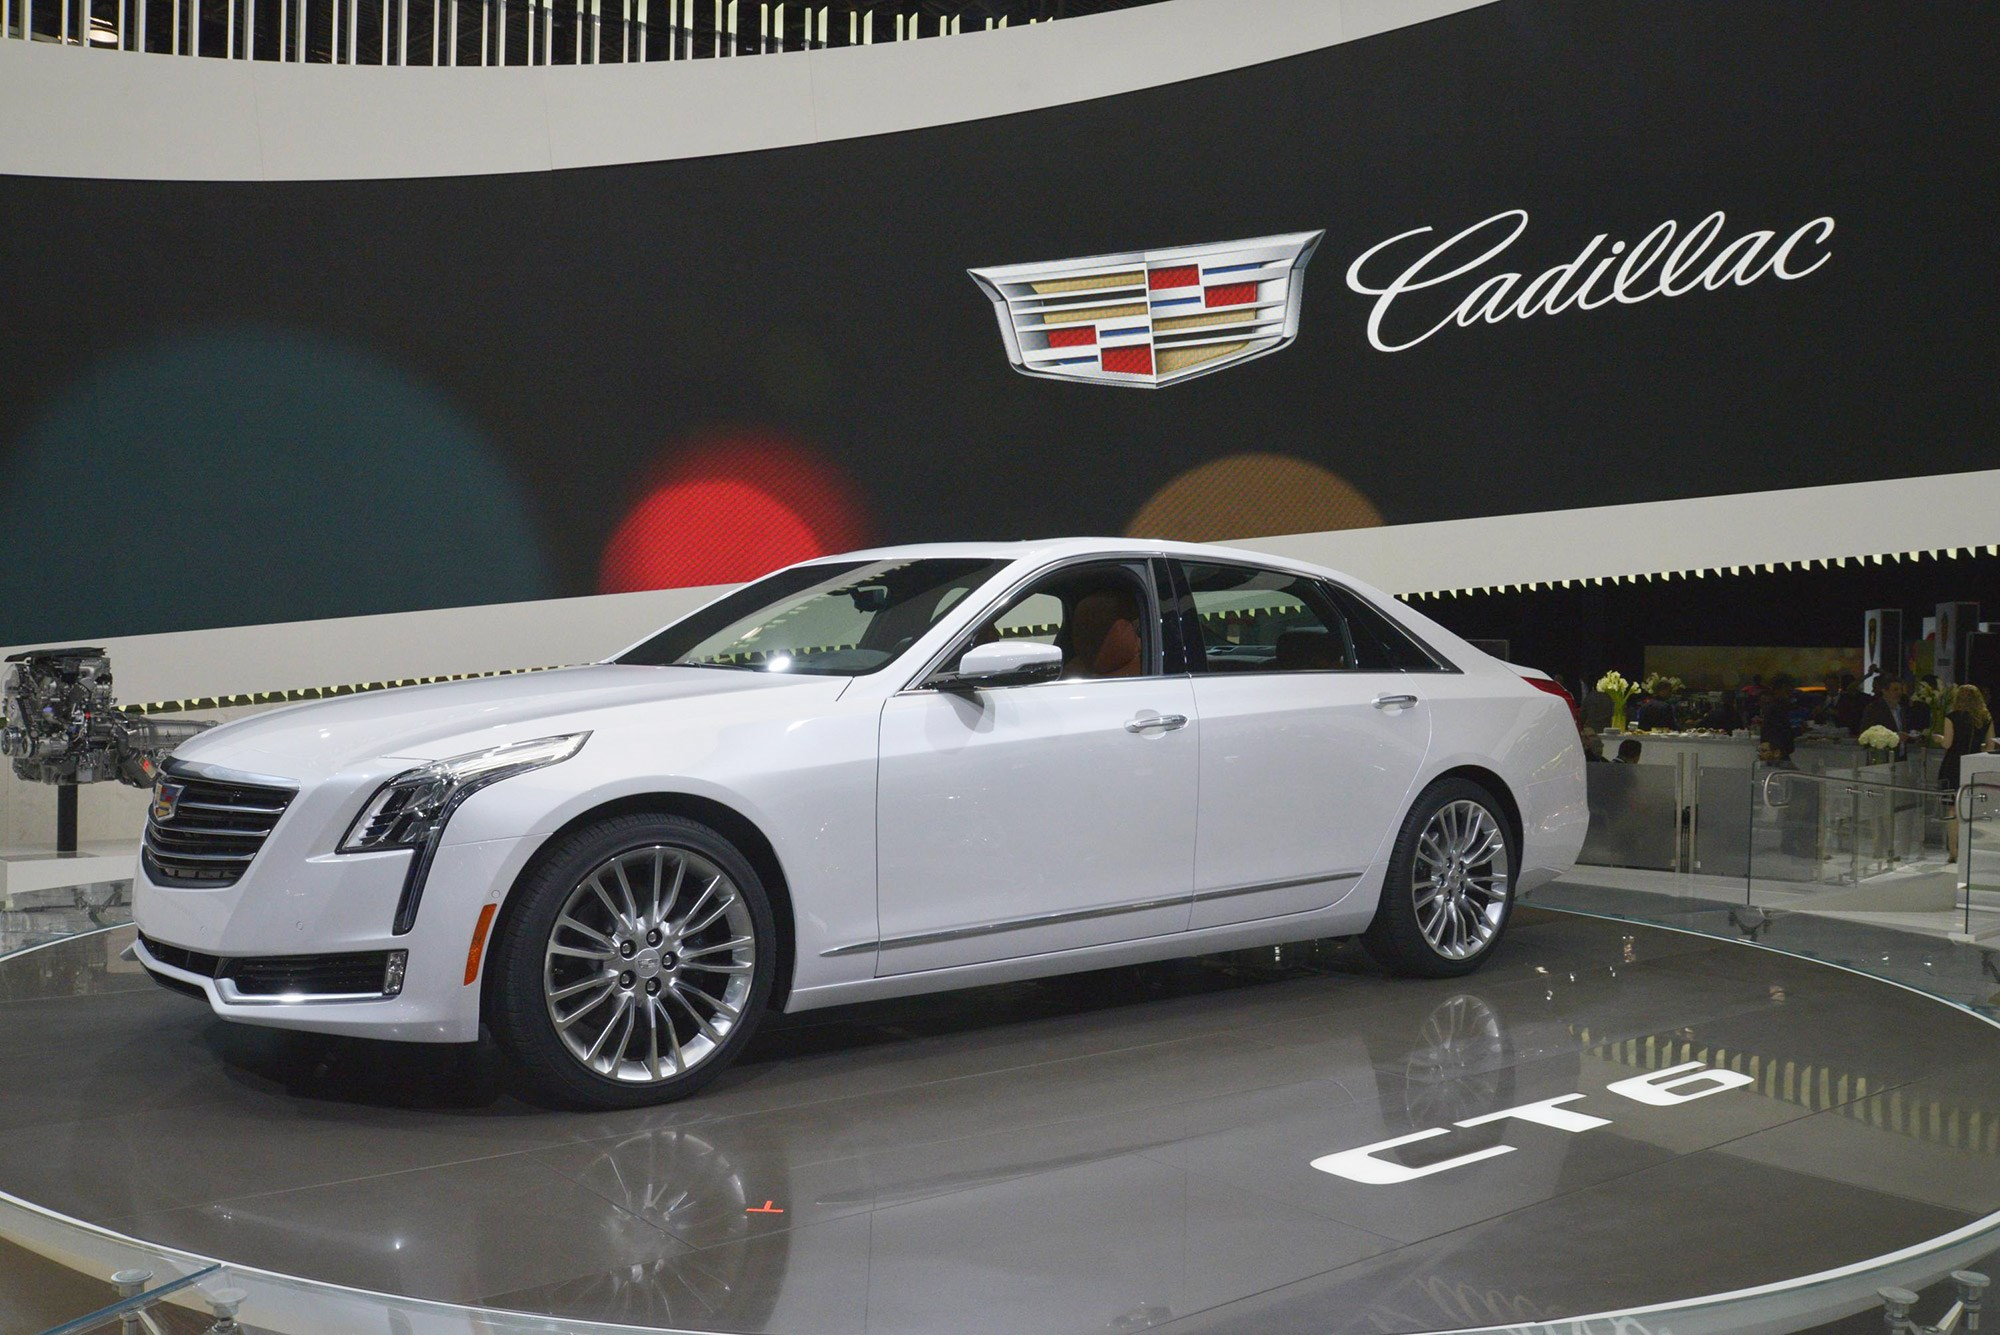 cts sale used cars search of you ats certified cadillac inventory for our car sales suvs and srx near include enterprise